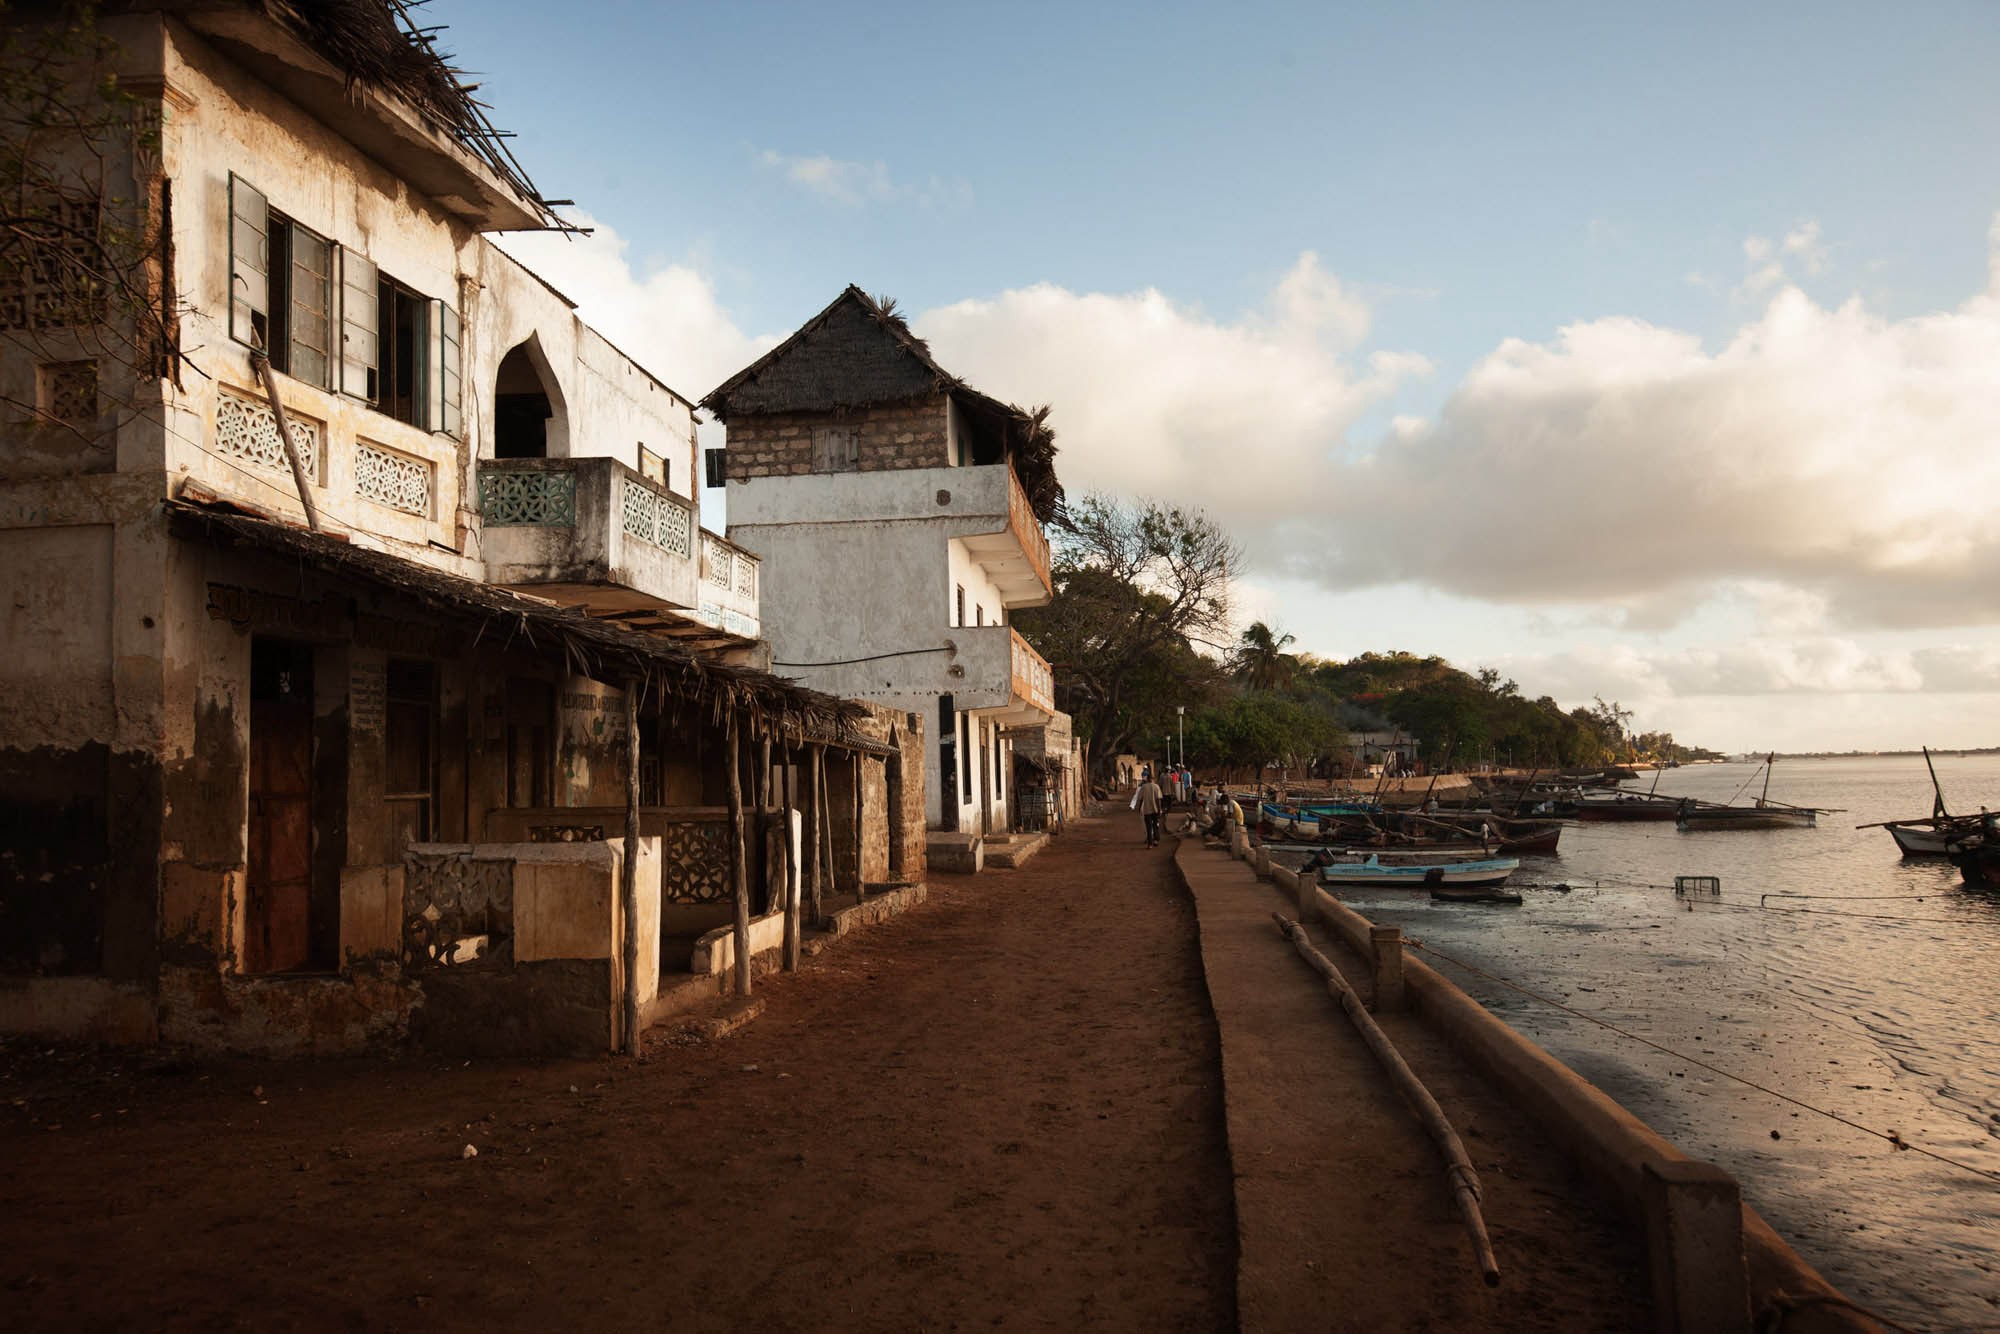 "Swahel is the Arabic word for coast, and the root of ""Swahili."" Because of its strategic location, Lamu's Old Town is one of the earliest settlements on the Swahili Coast of East Africa. 